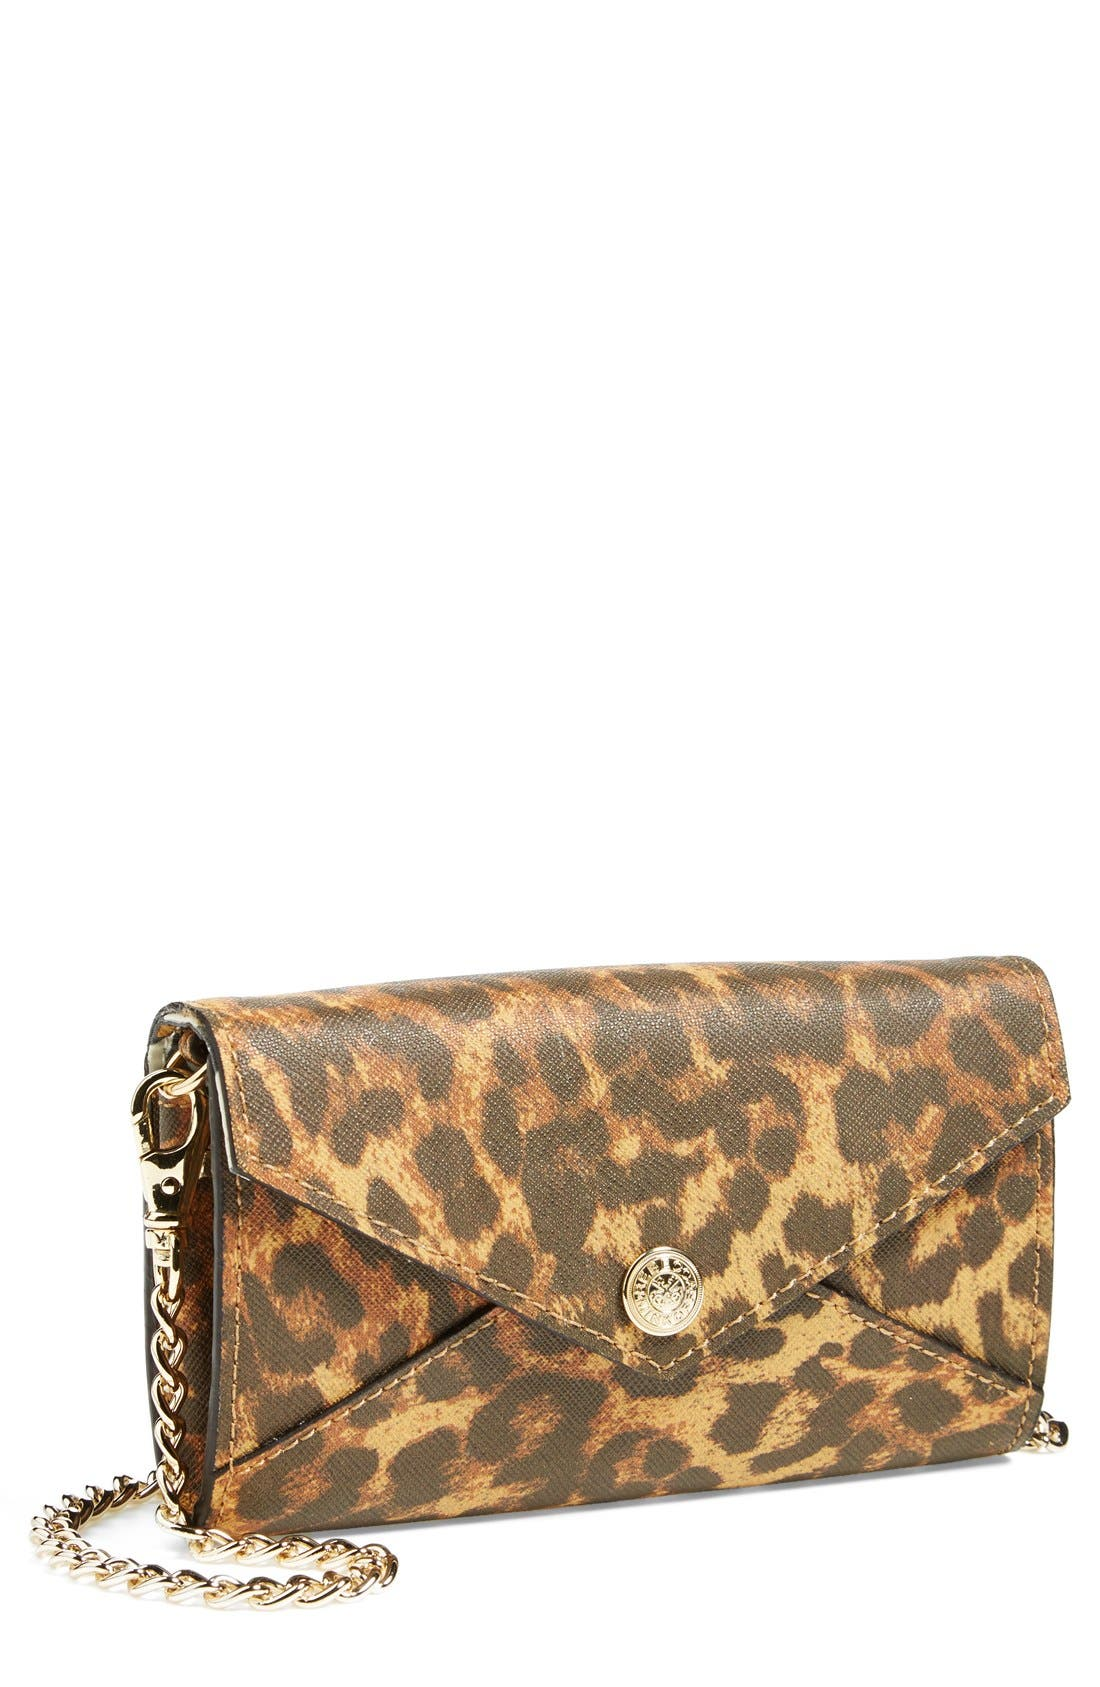 Main Image - Rebecca Minkoff 'Mini Wallet on a Chain' Crossbody Bag